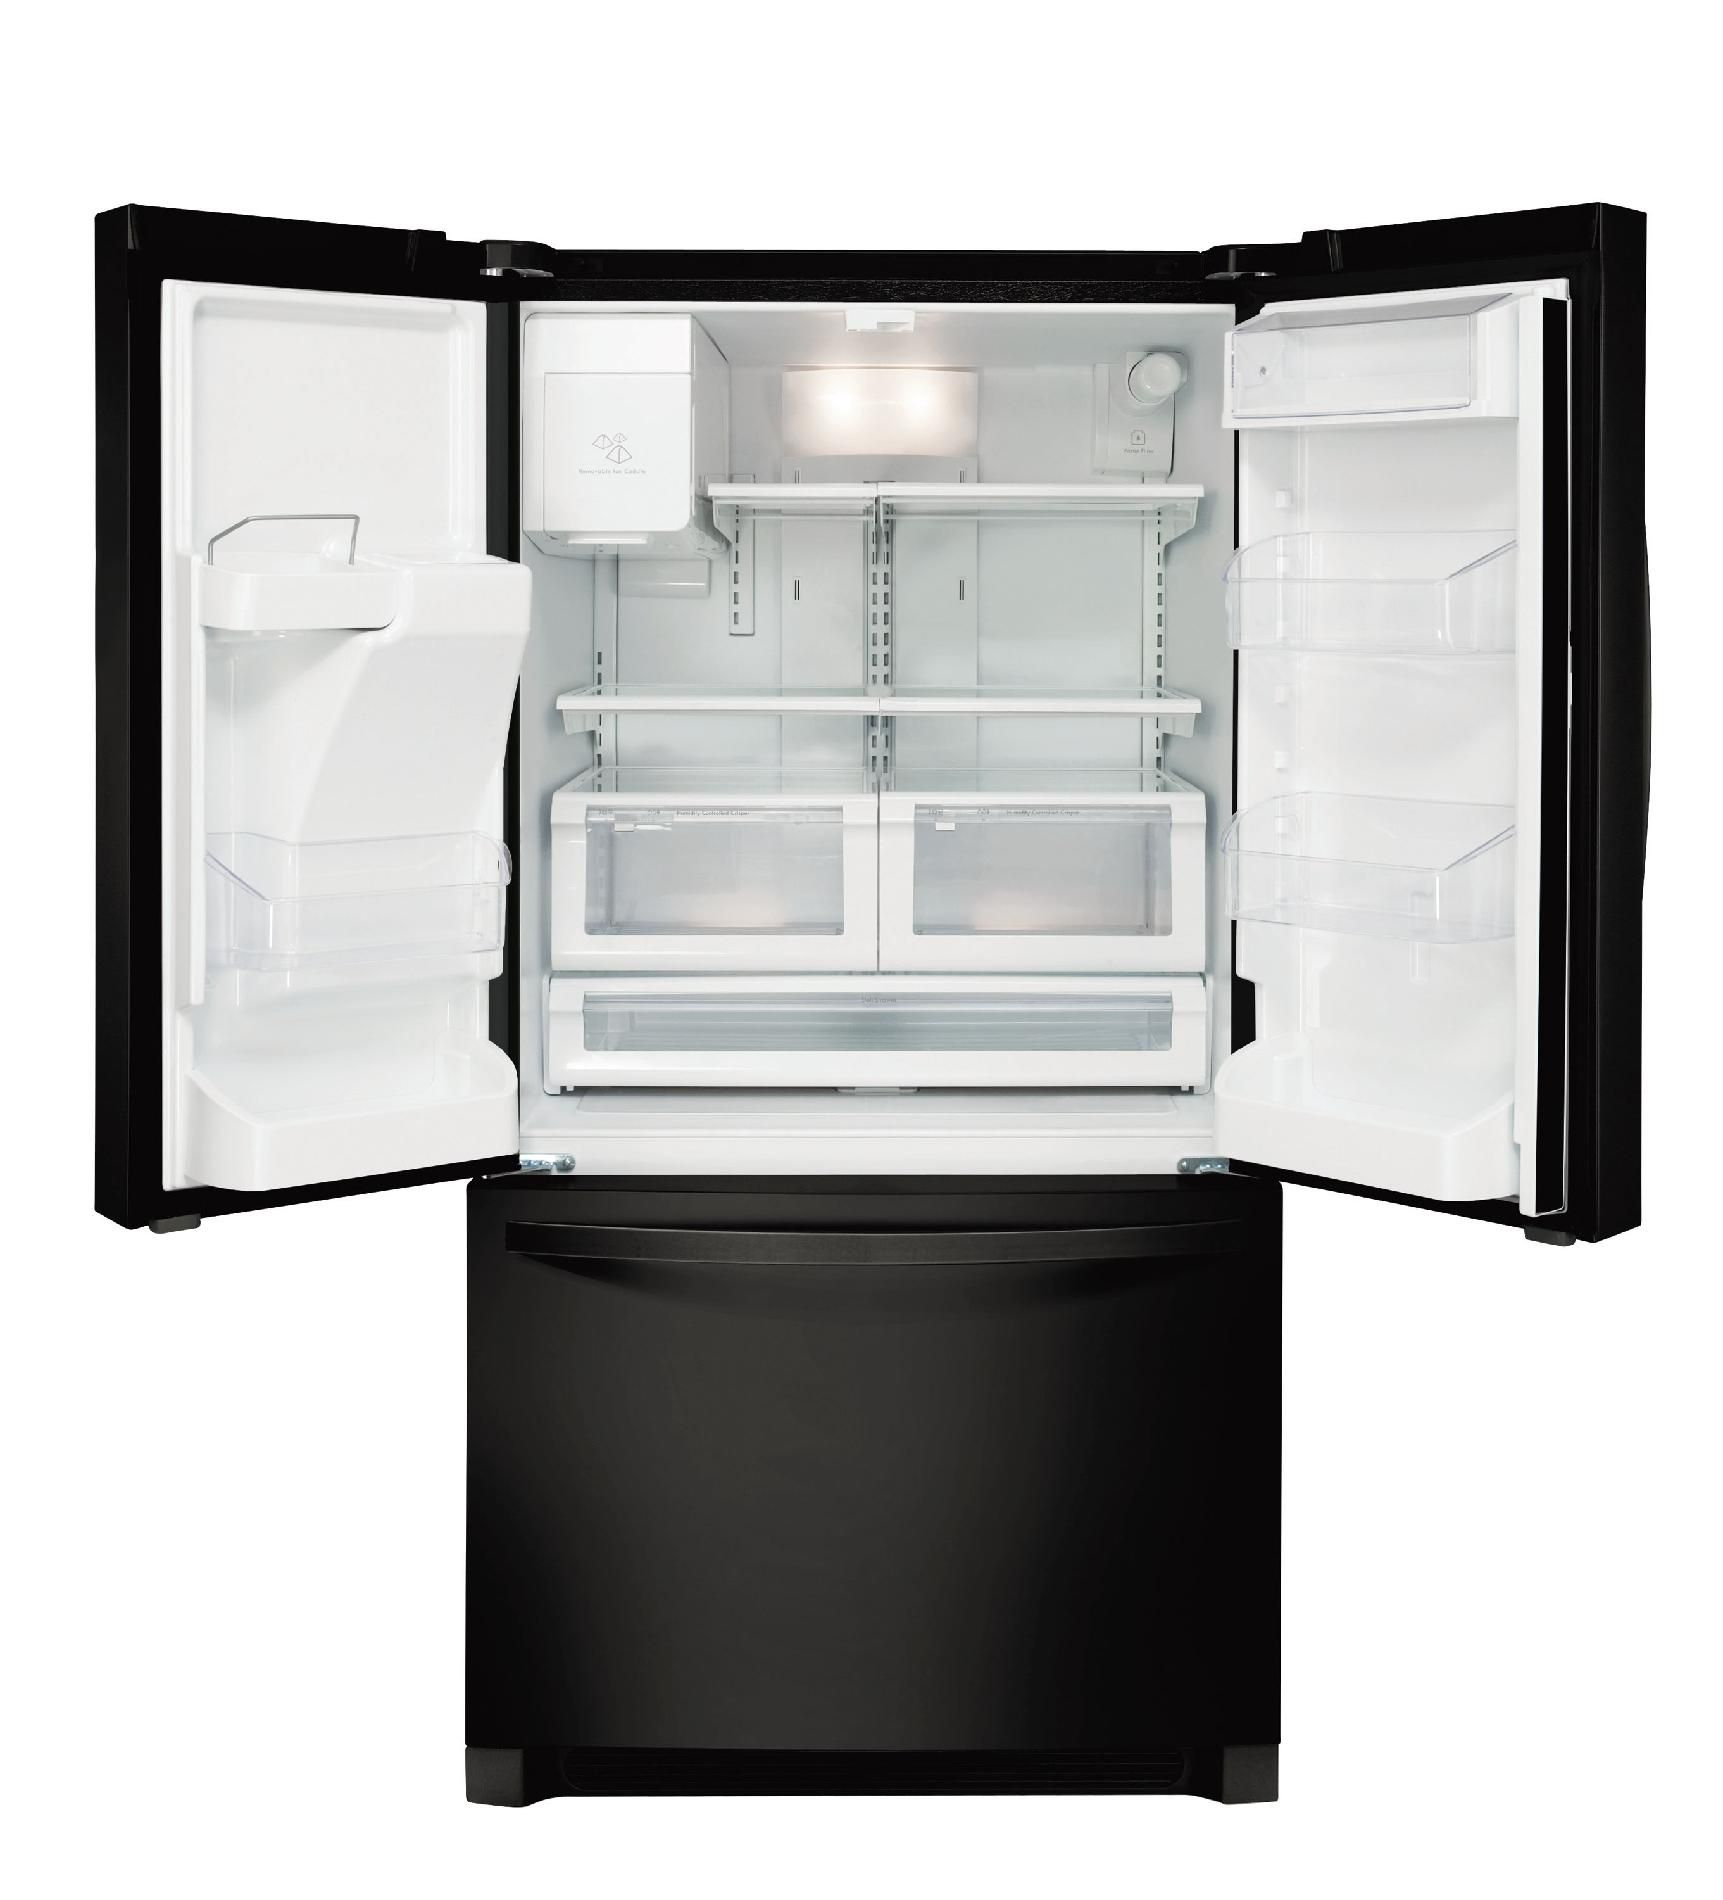 Kenmore 26.7 cu. ft. French DoorBottom-Freezer Refrigerator - Black